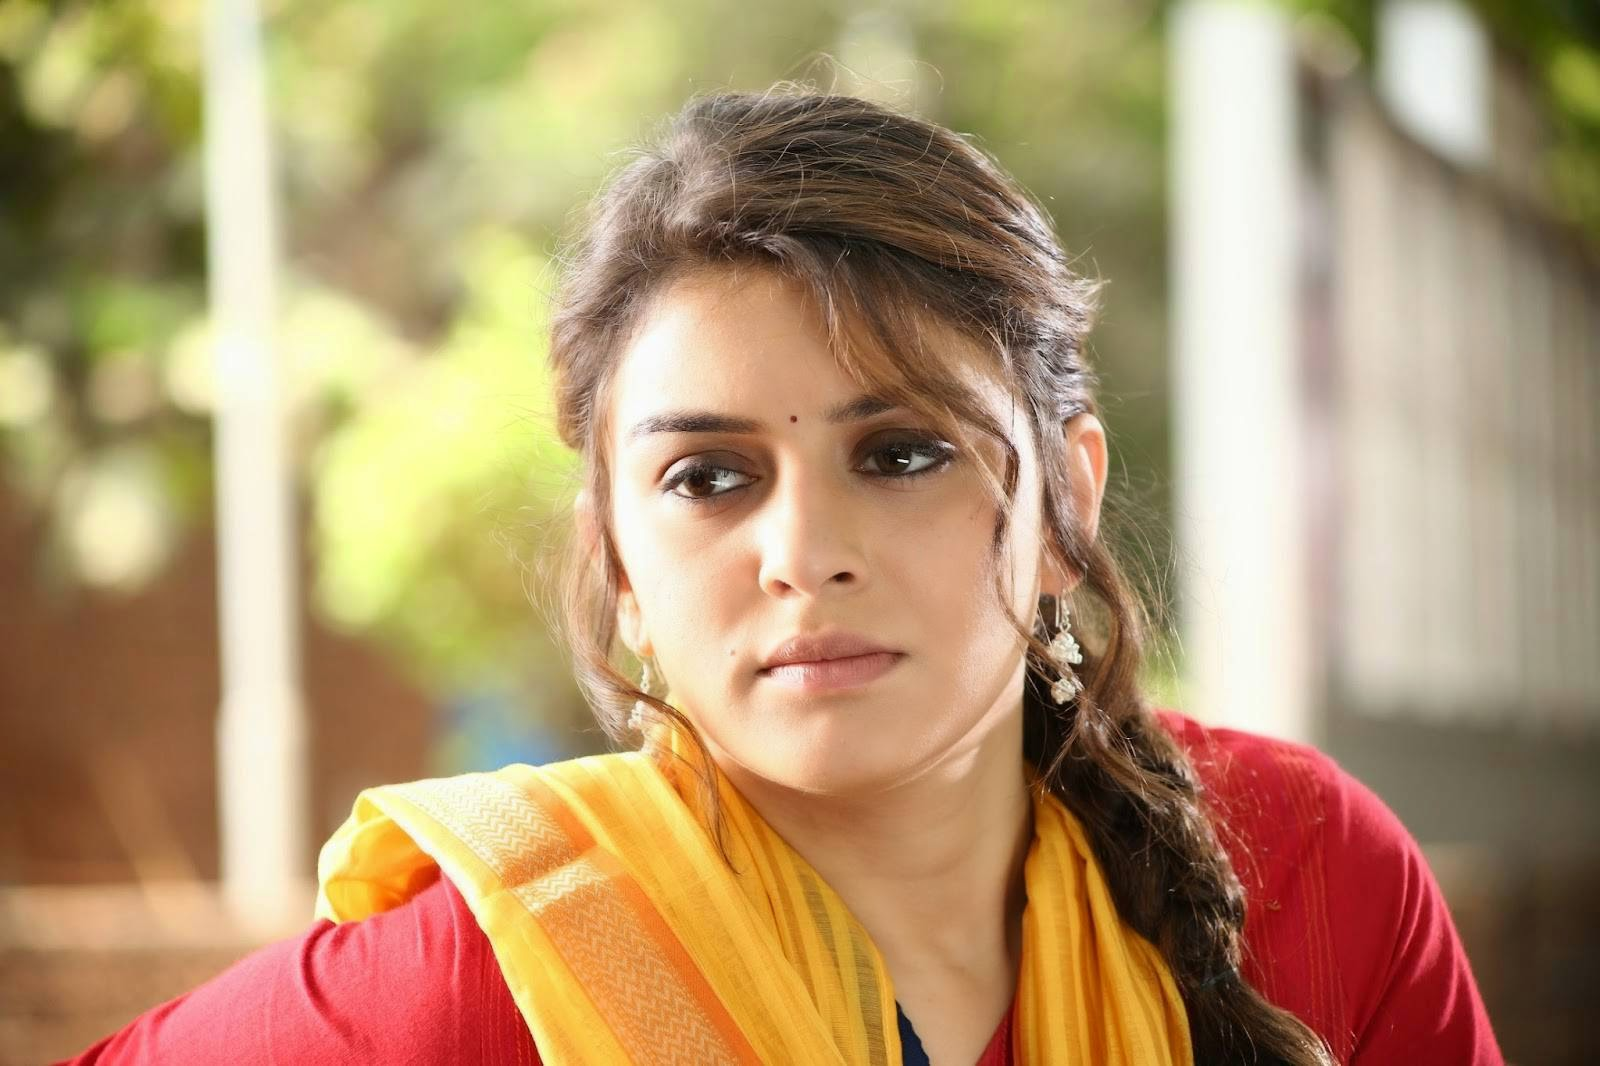 meaghamann actress hansika motwani stills, hansika in tamil movie